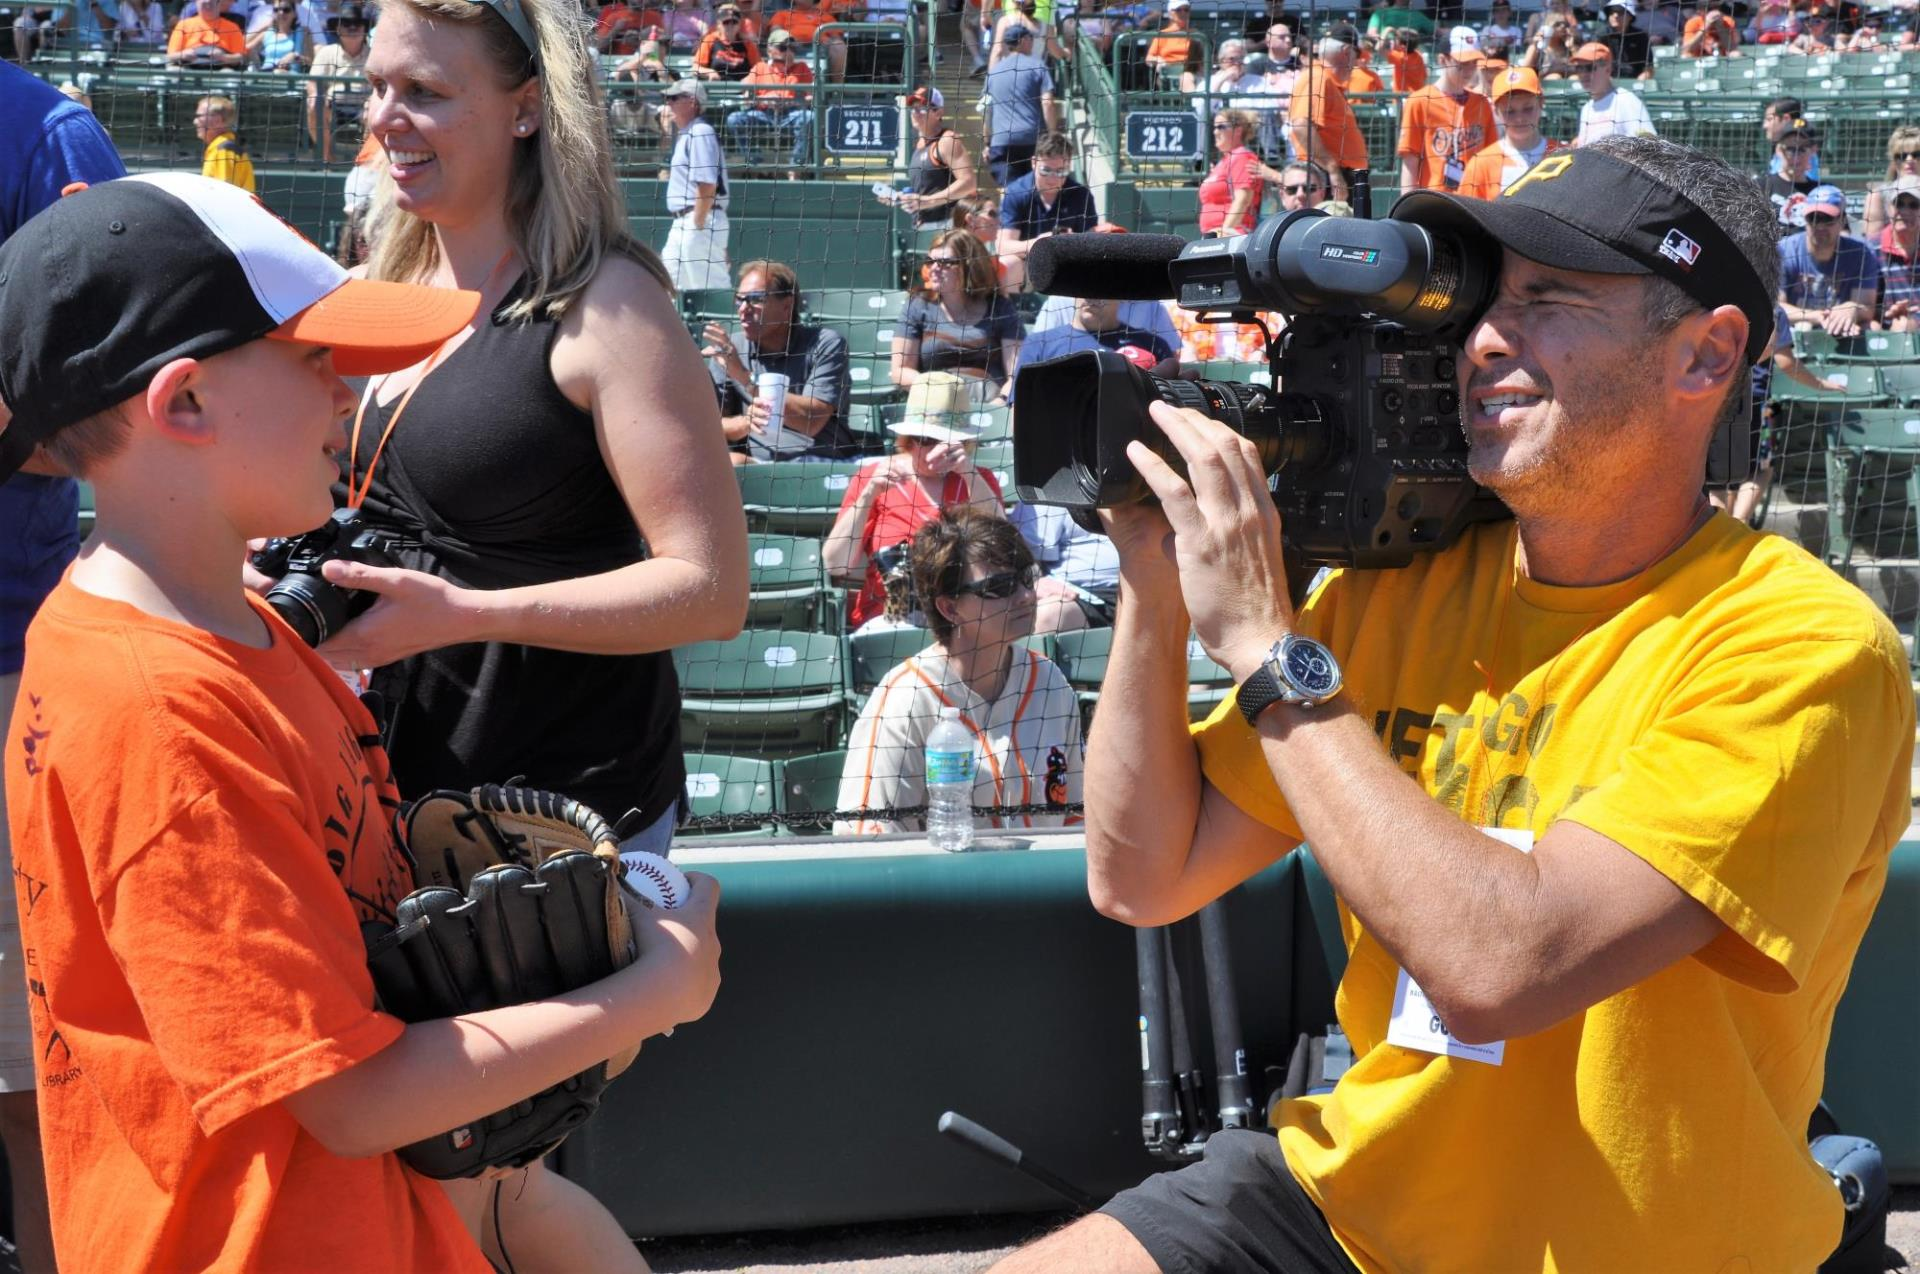 Videographer shooting an interview with a child at Ed Smith Stadium in Sarasota